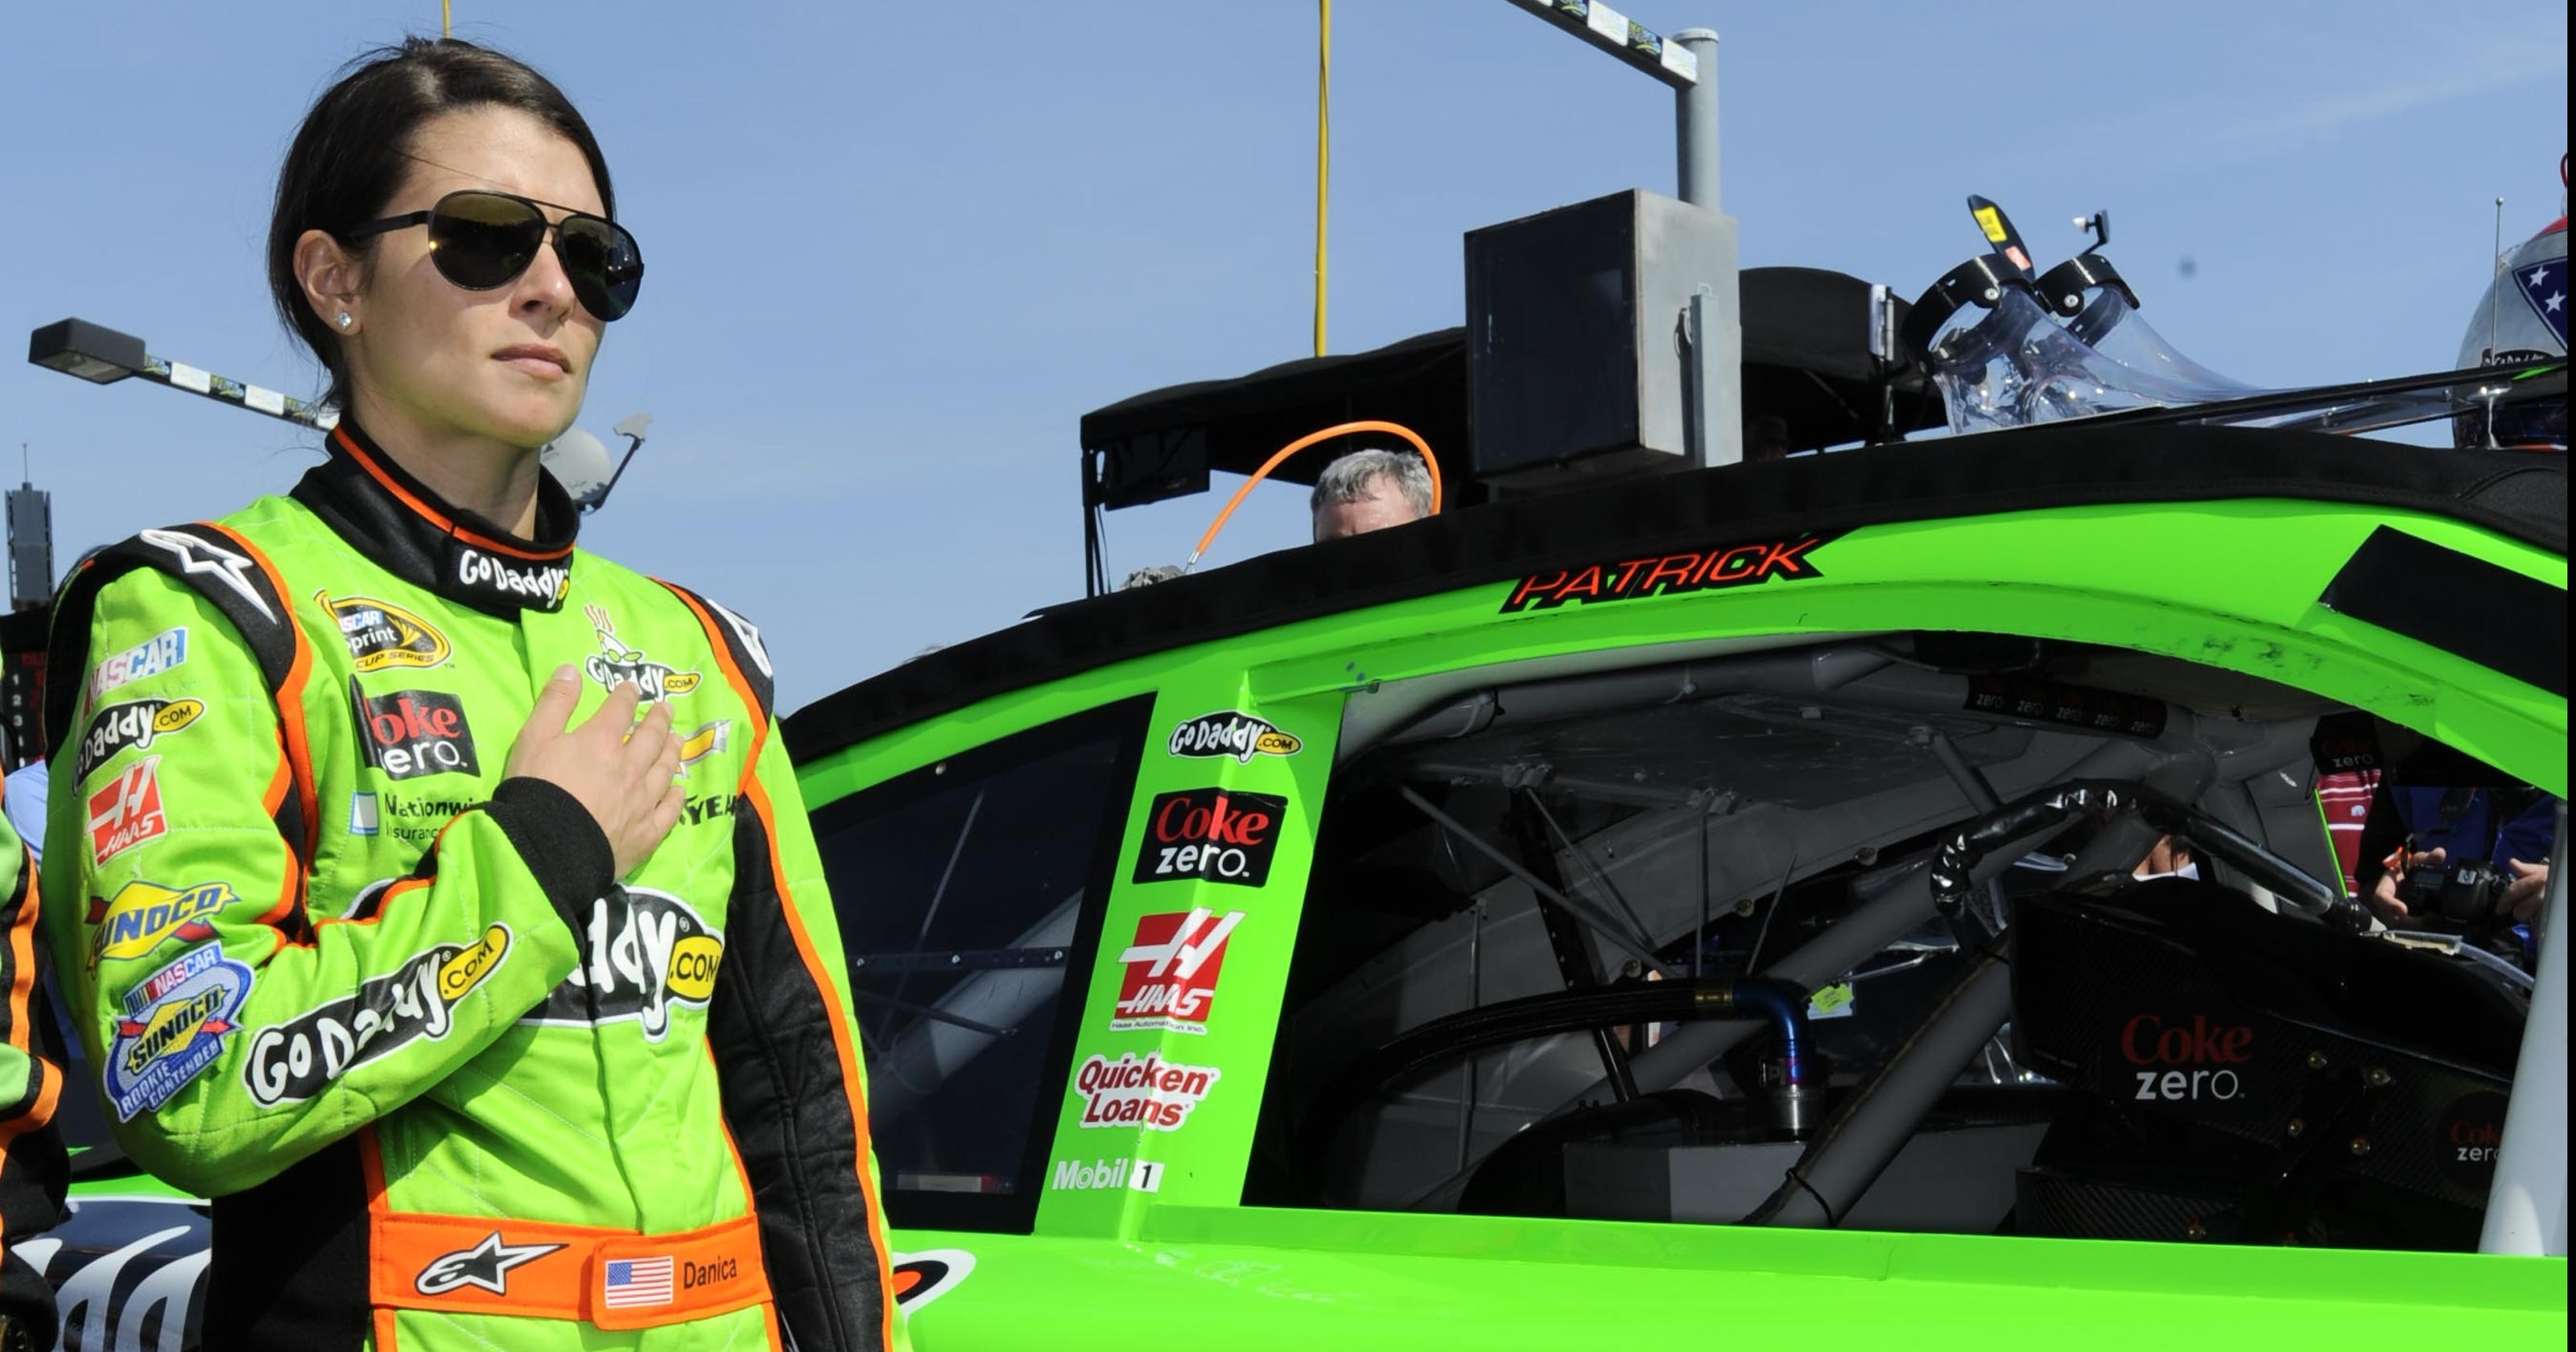 Danica patrick could change auto racing sports forever biocorpaavc Choice Image